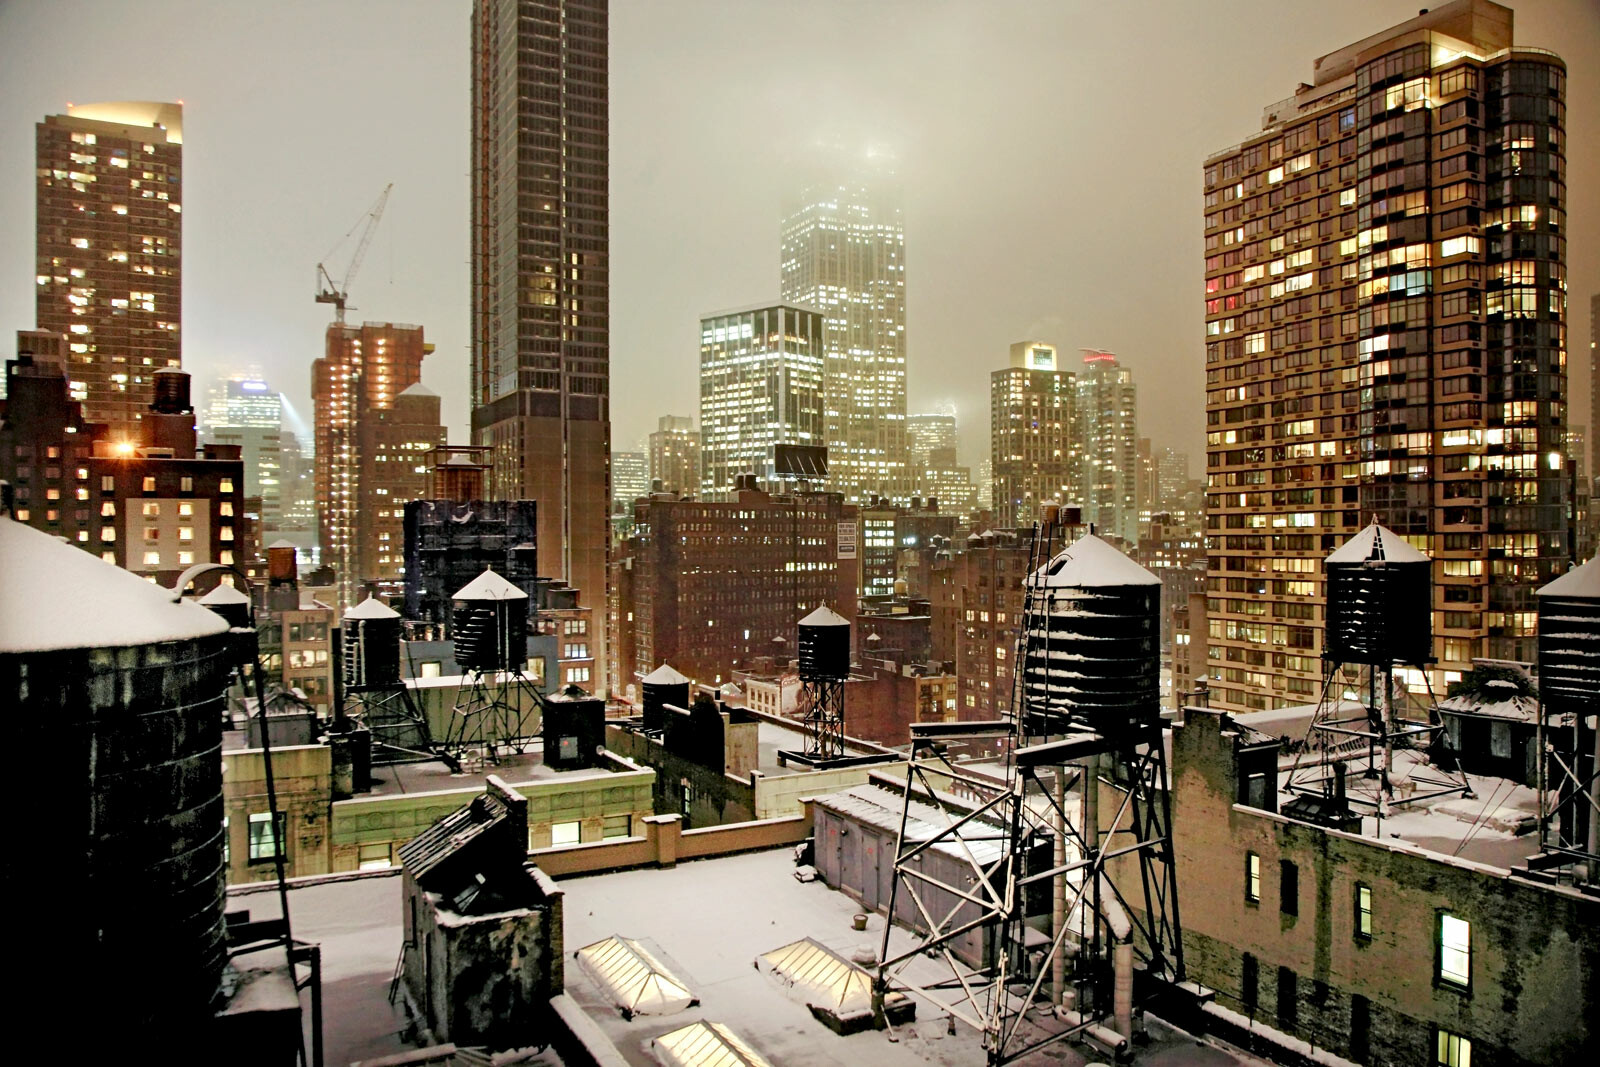 Gold night by Christophe Jacrot